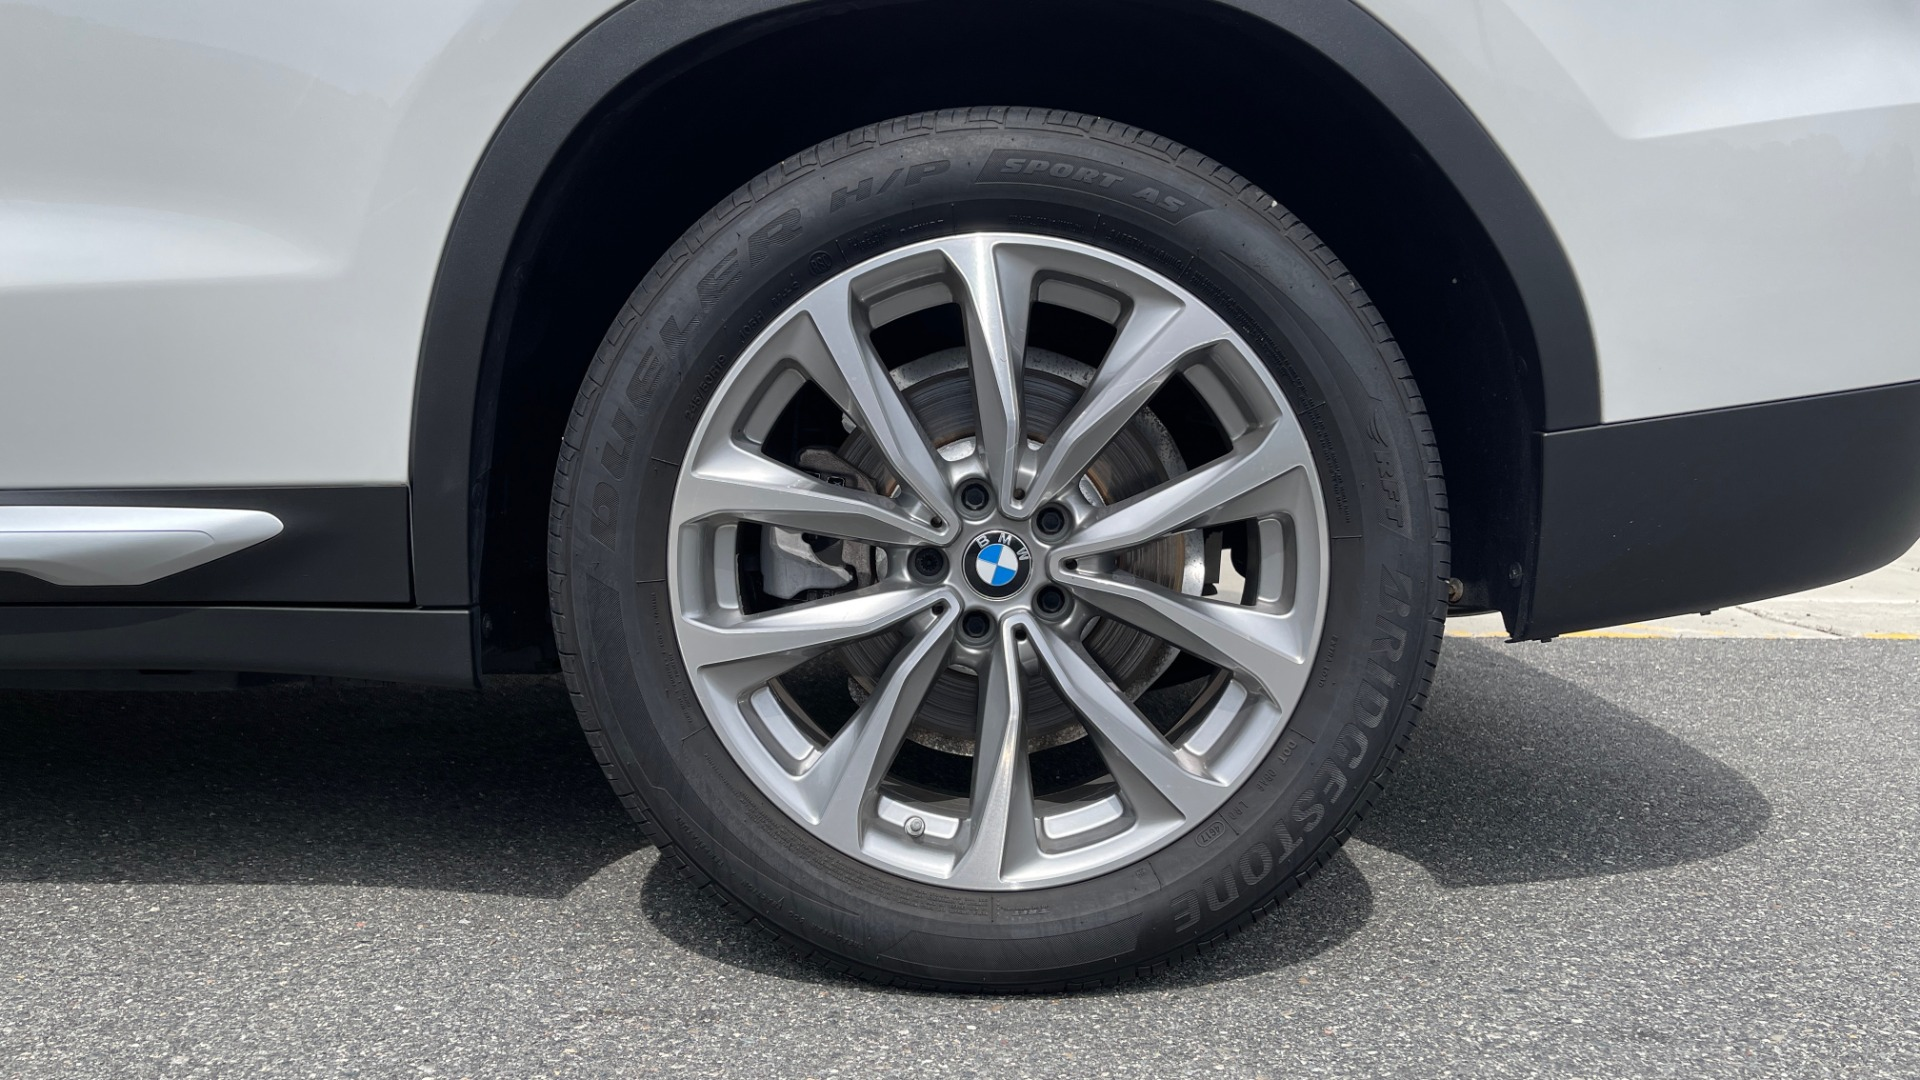 Used 2018 BMW X3 XDRIVE30I / NAV / PANO-ROOF / HTD STS / PARK DIST CNTRL / REARVIEW for sale $38,995 at Formula Imports in Charlotte NC 28227 65